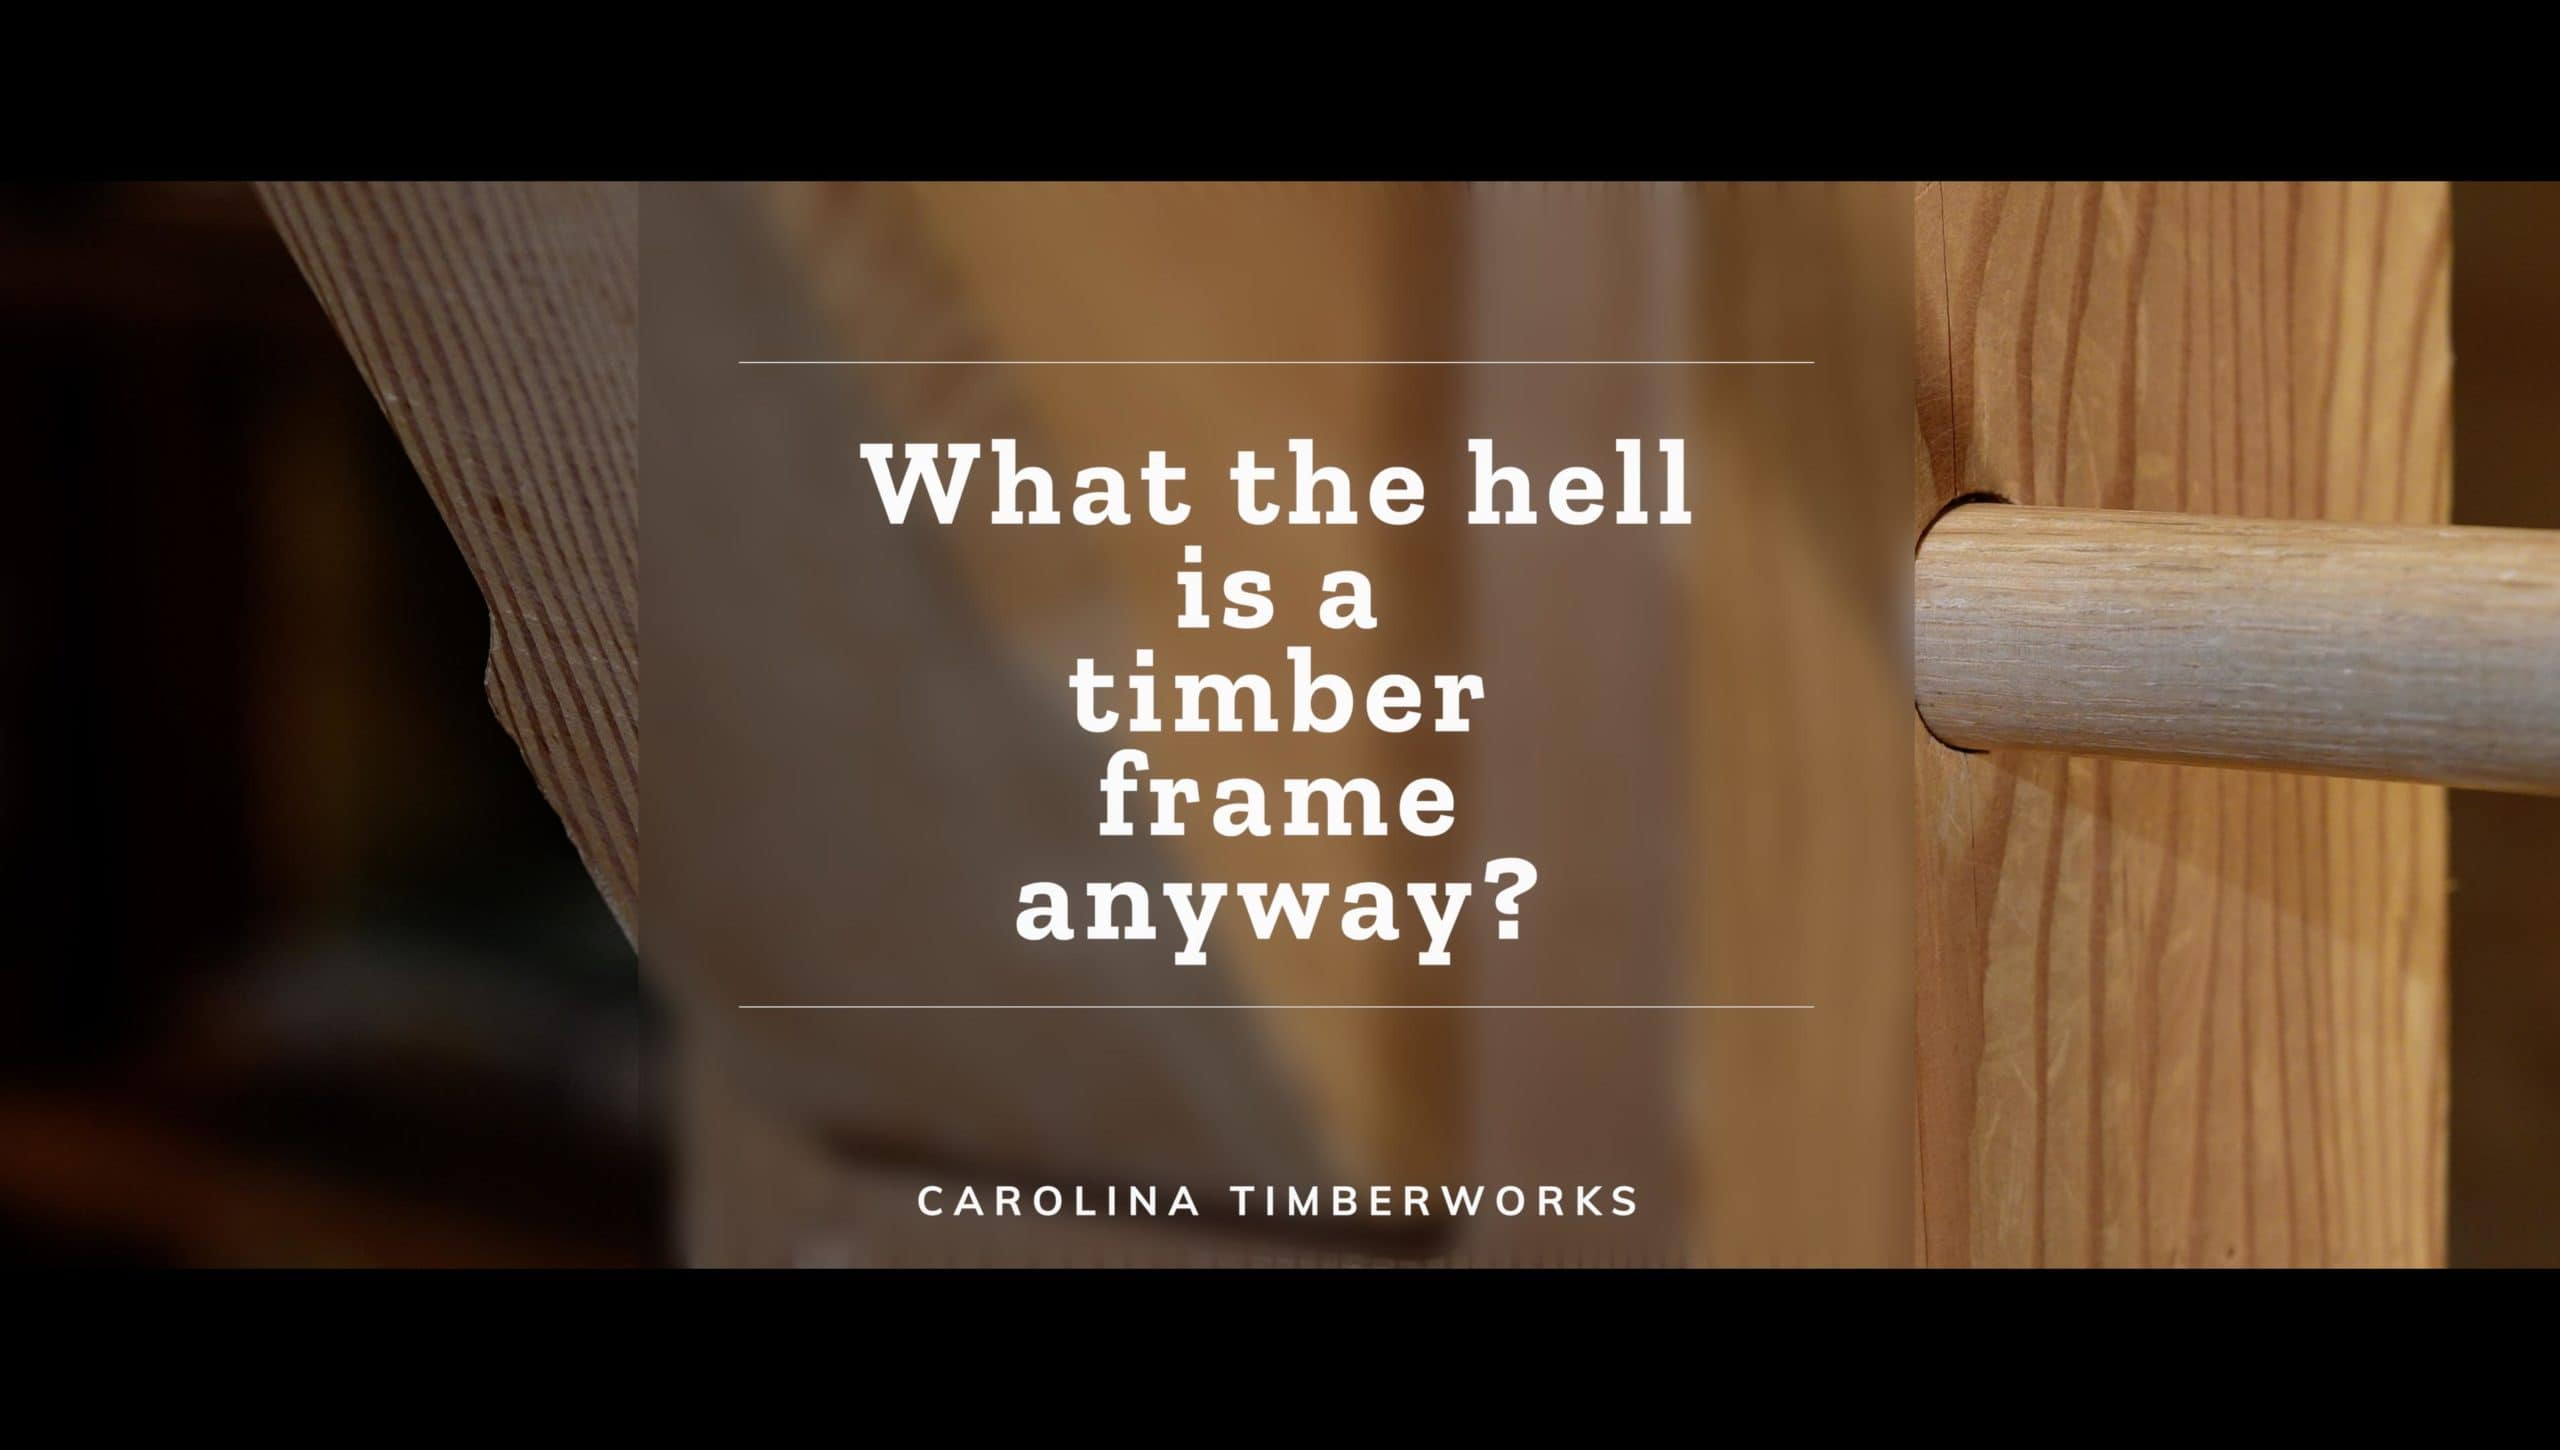 What is a timber frame